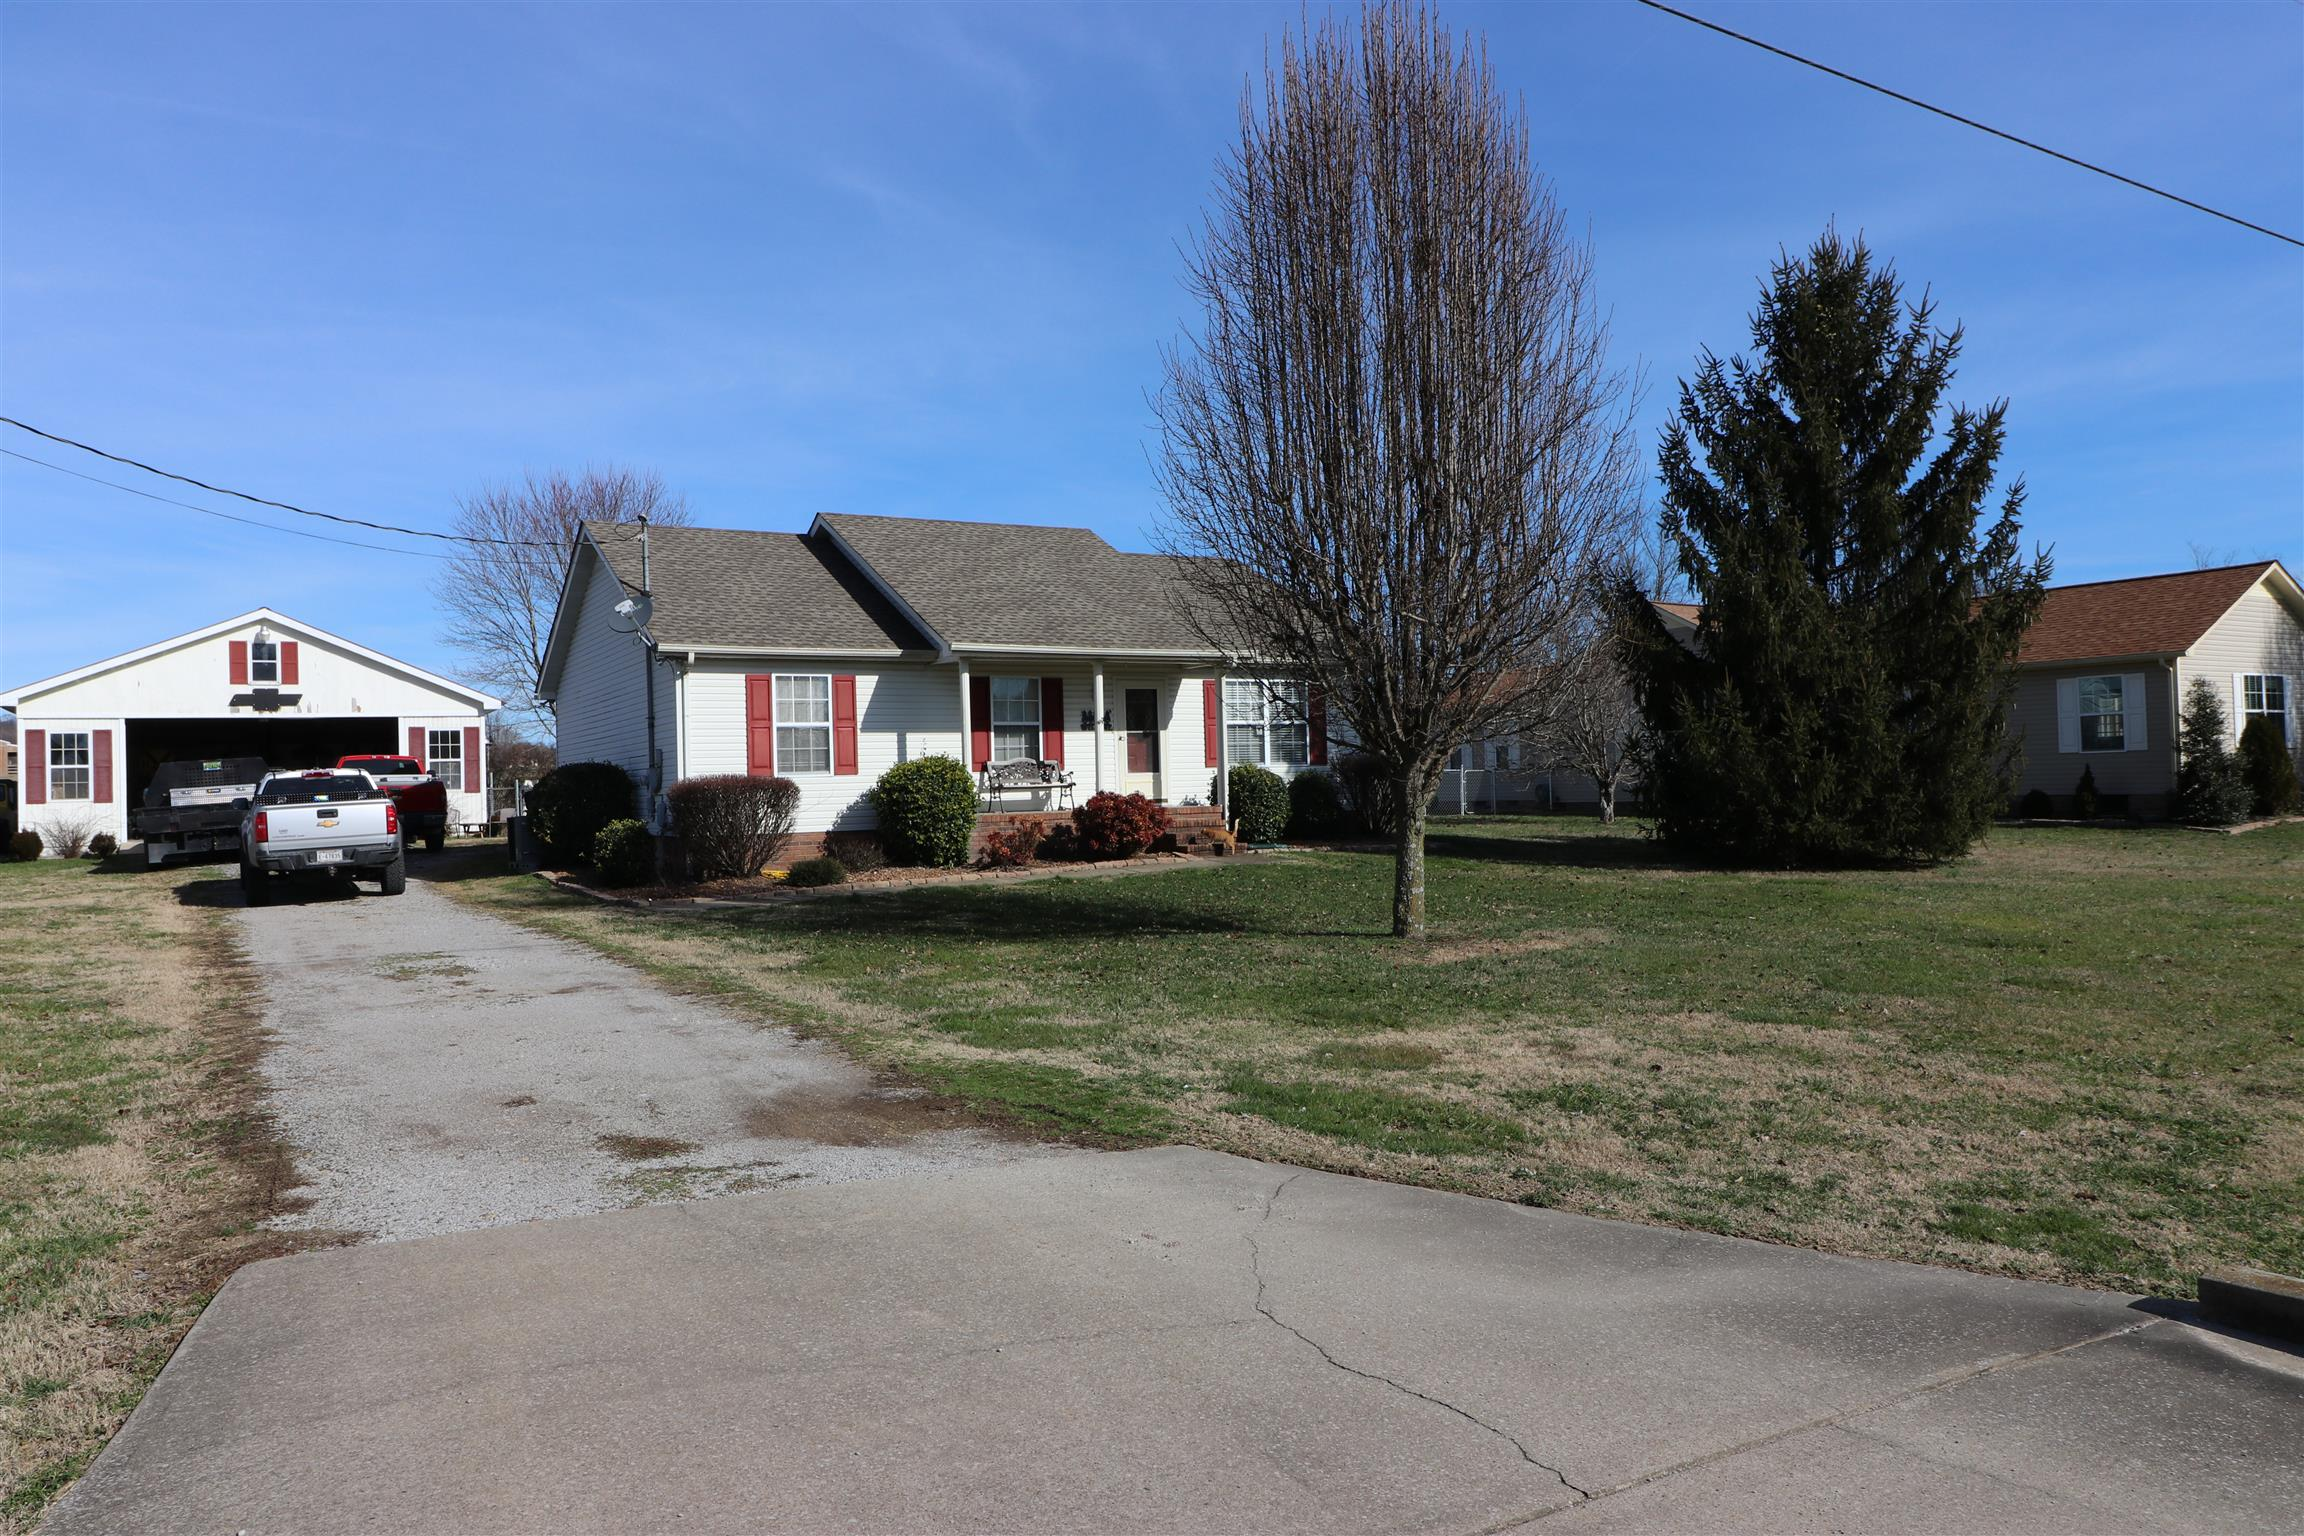 330 Maplewood Dr. Cornersville, TN 37047